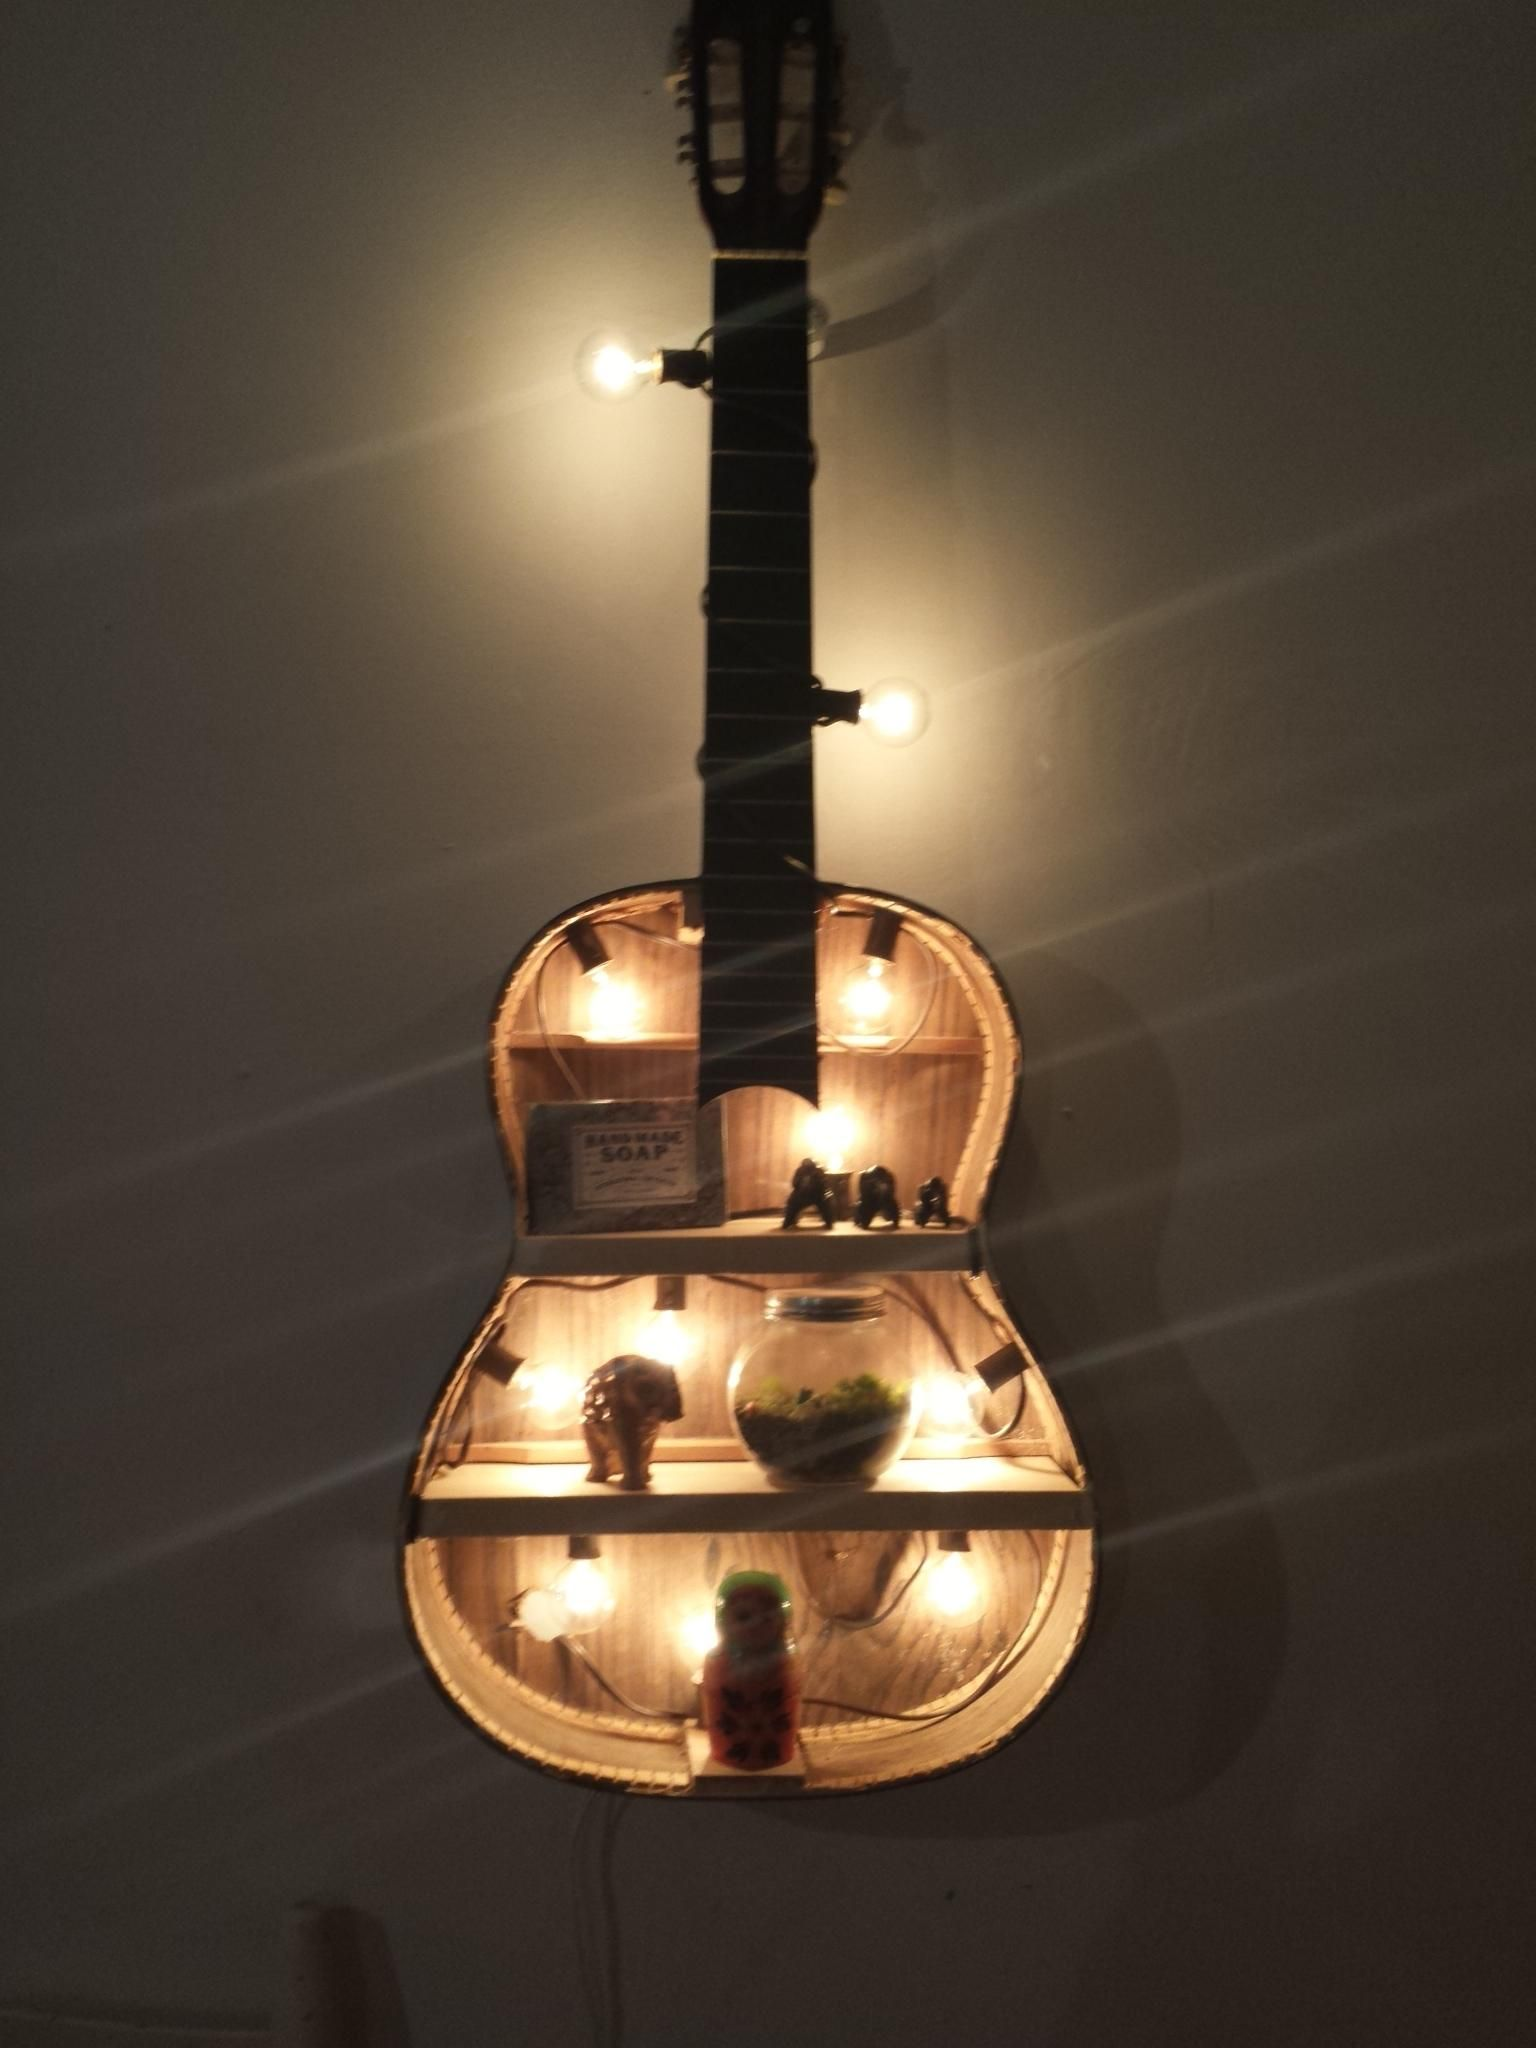 magnificent repurposed guitar ideas for the ideal home decoration diy challenge in 2019. Black Bedroom Furniture Sets. Home Design Ideas